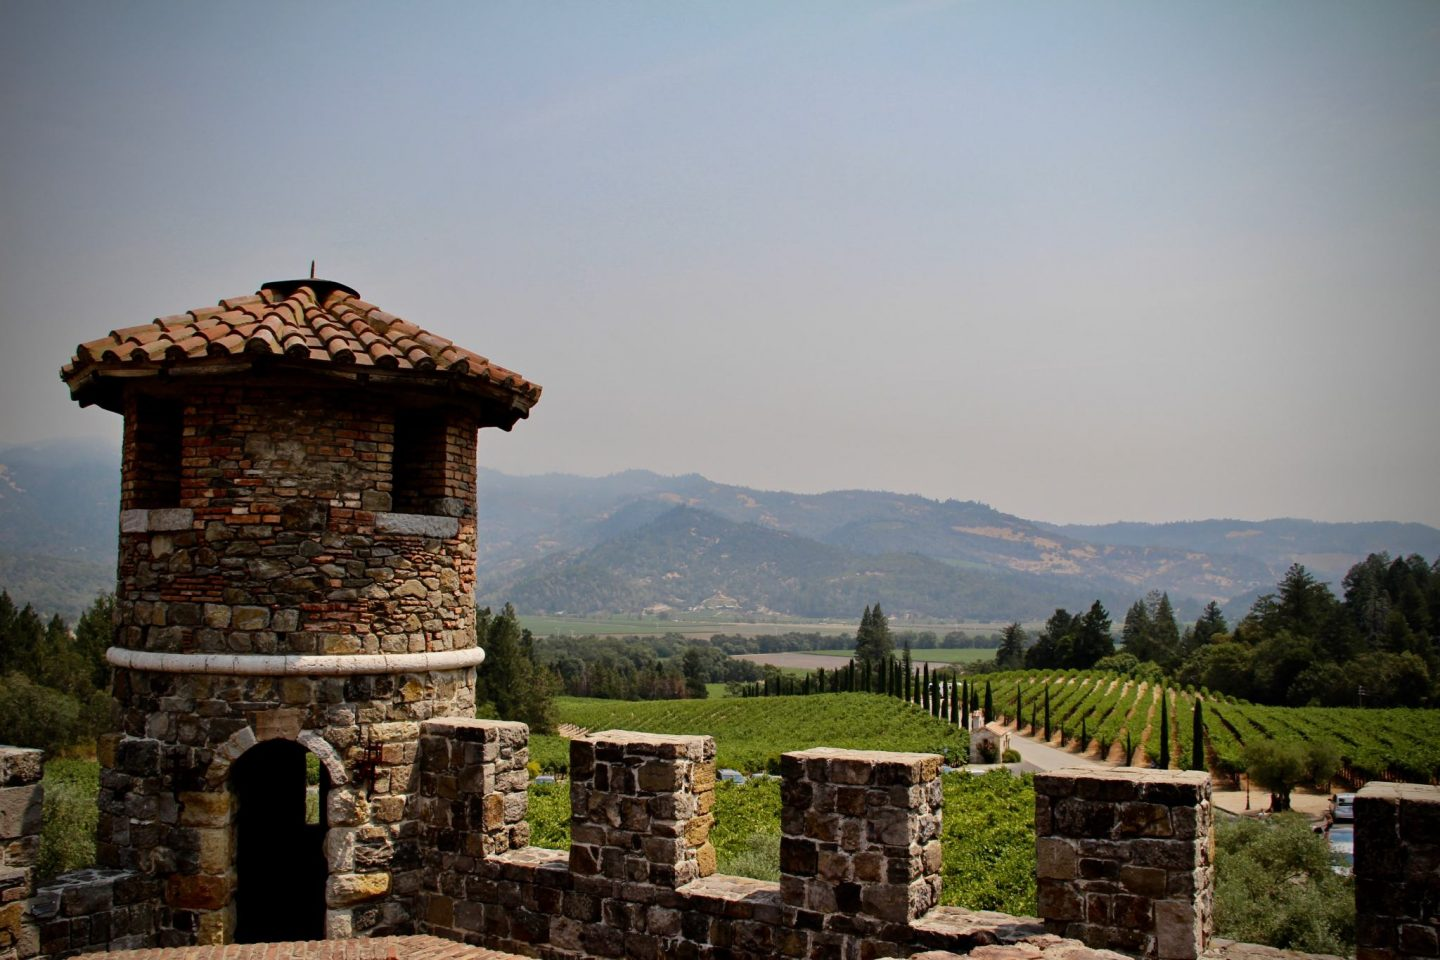 24 hour travel | Wine sipping in Napa